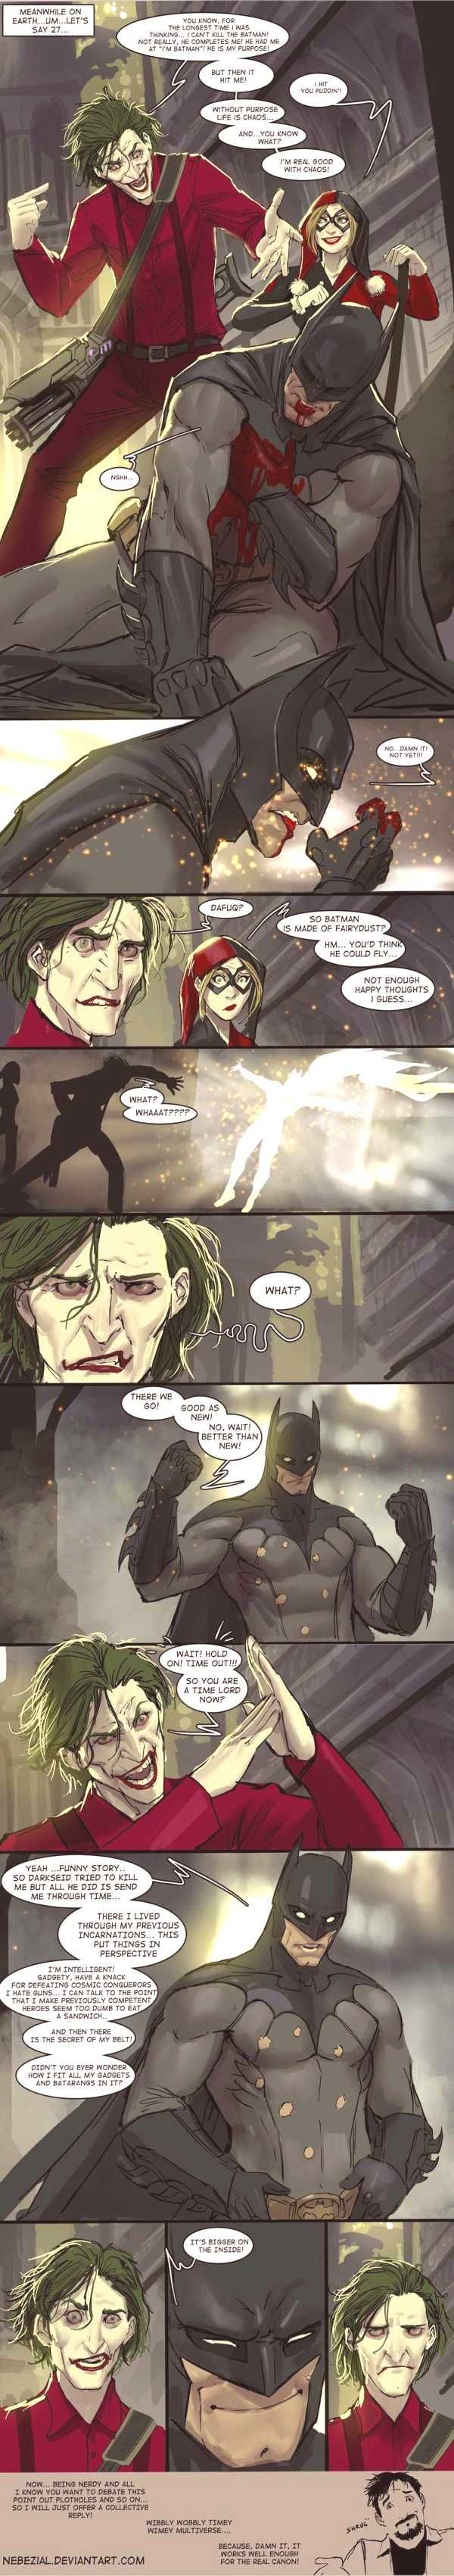 Batman as a Time Lord - I didn't even know how much I wanted ...